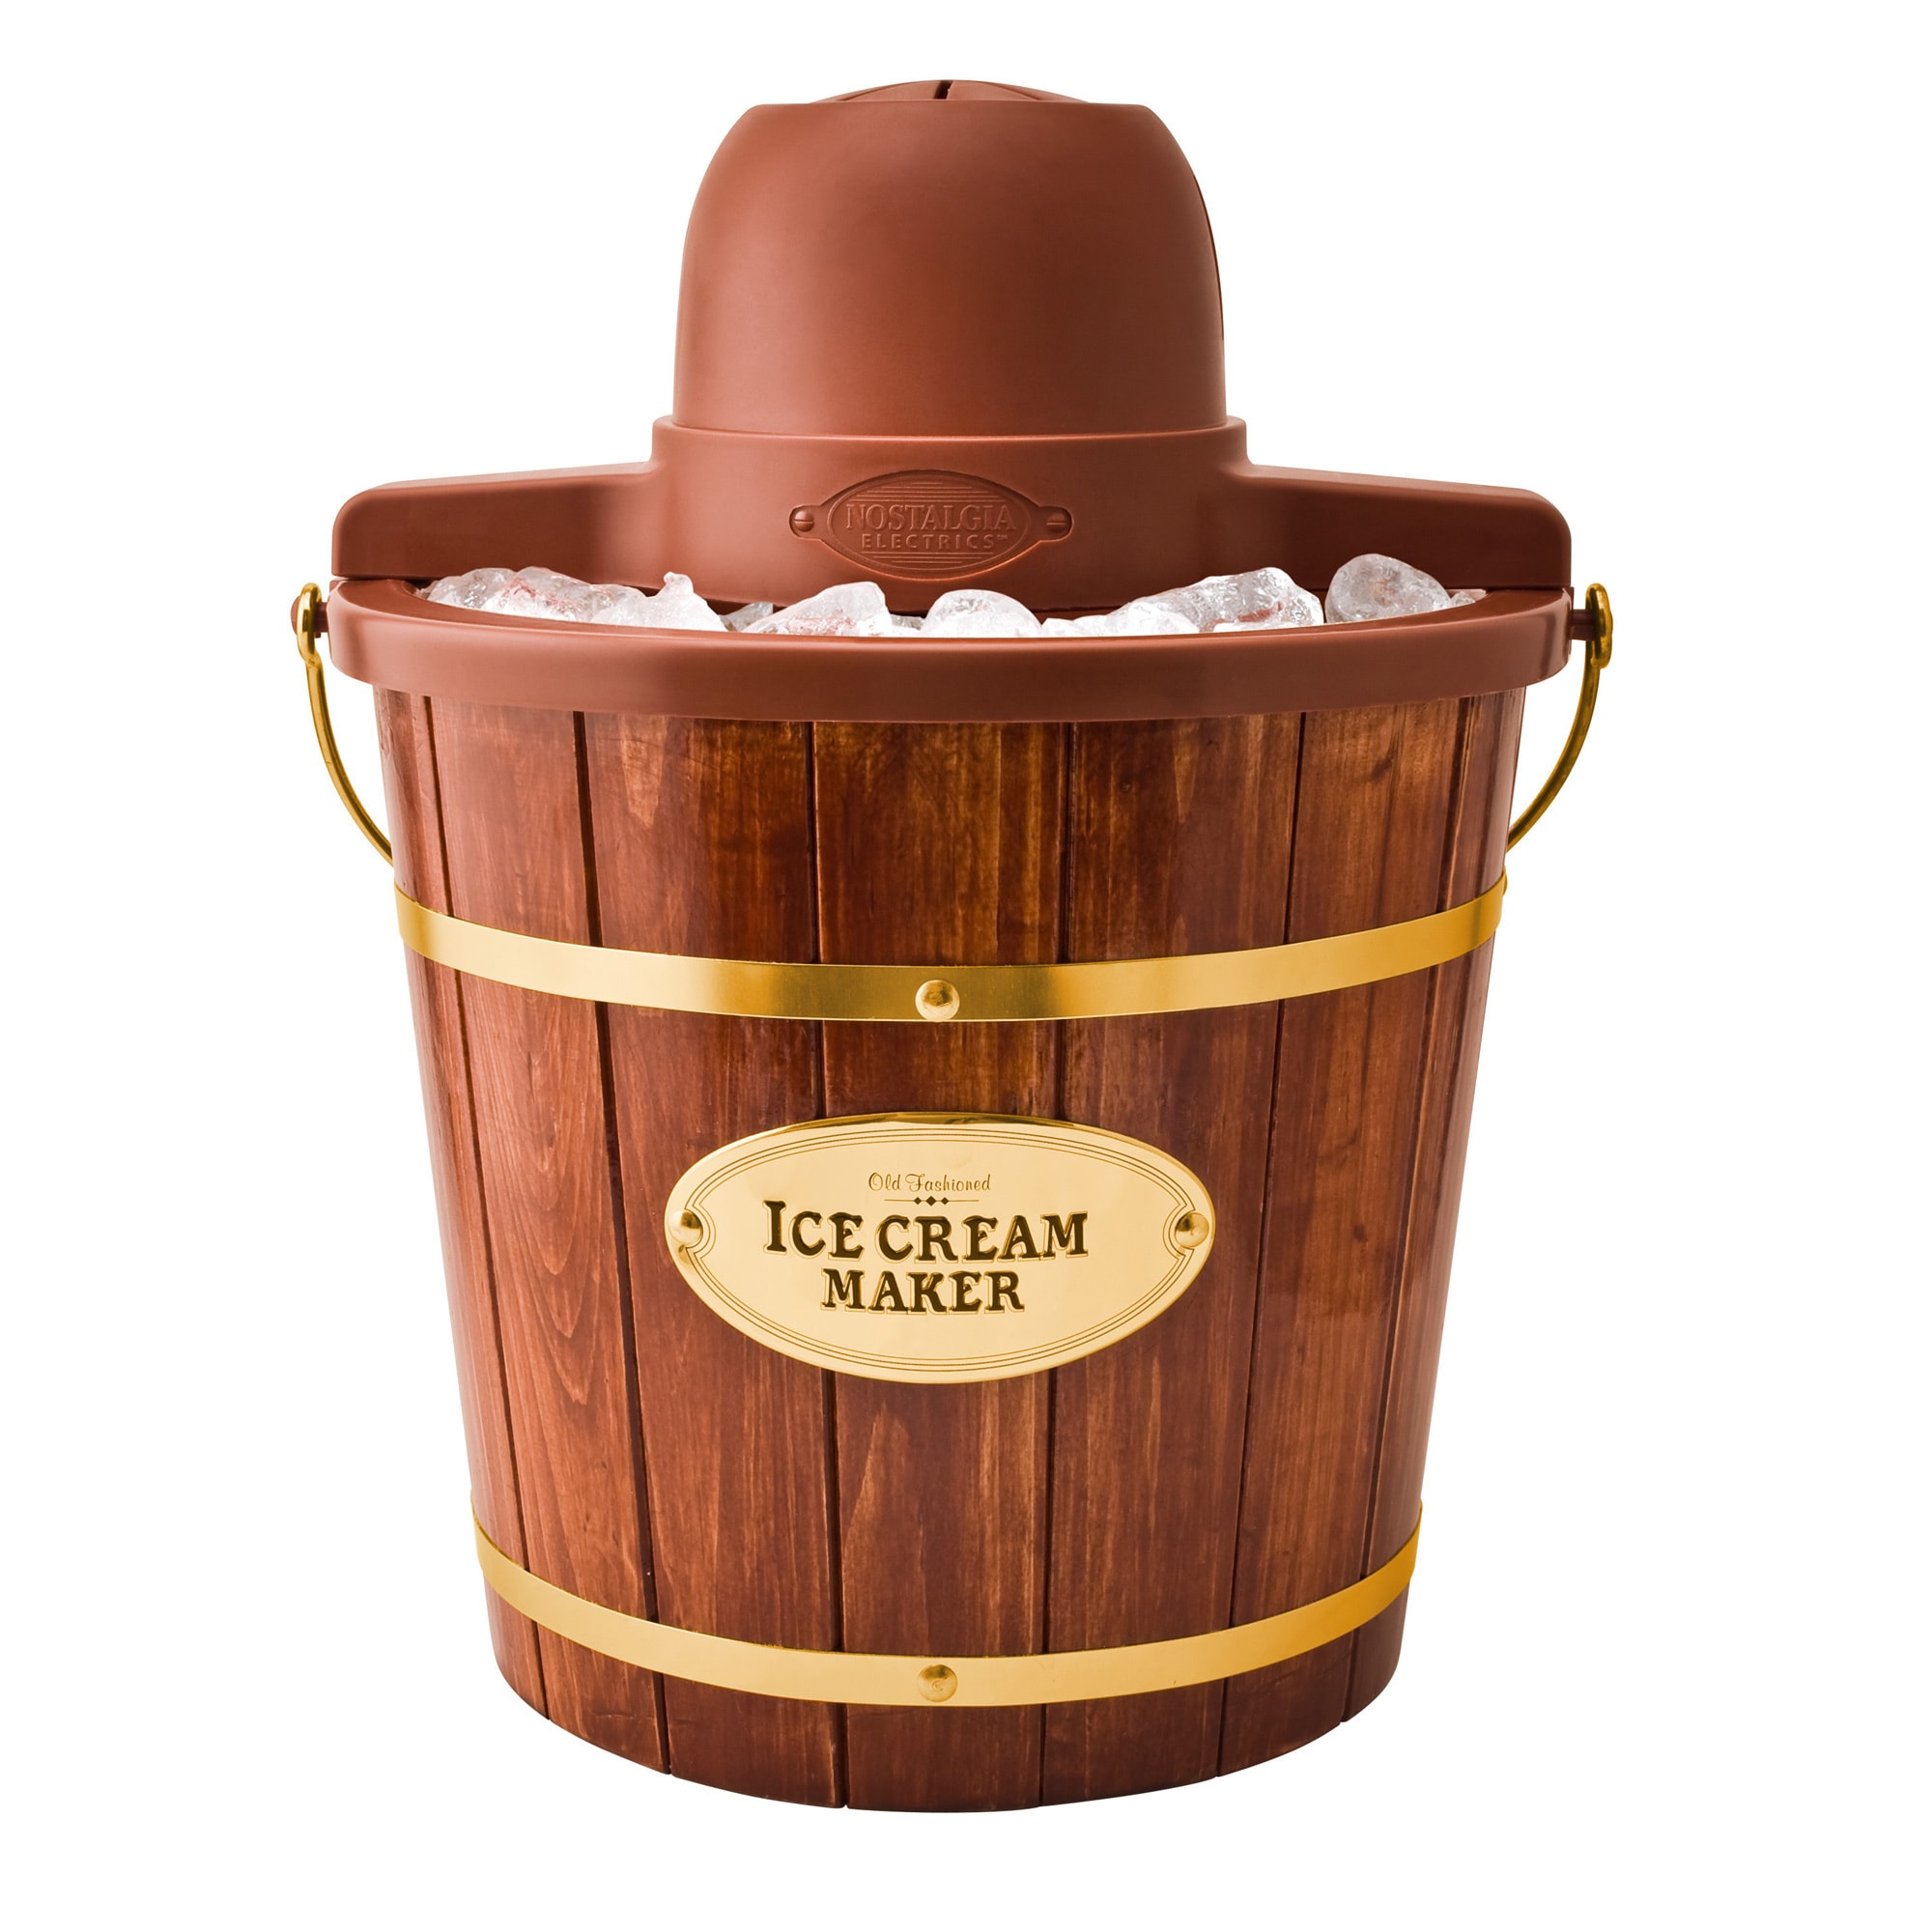 Nostalgia Wooden Bucket ICMW400 4-quart Electric Ice Crea...